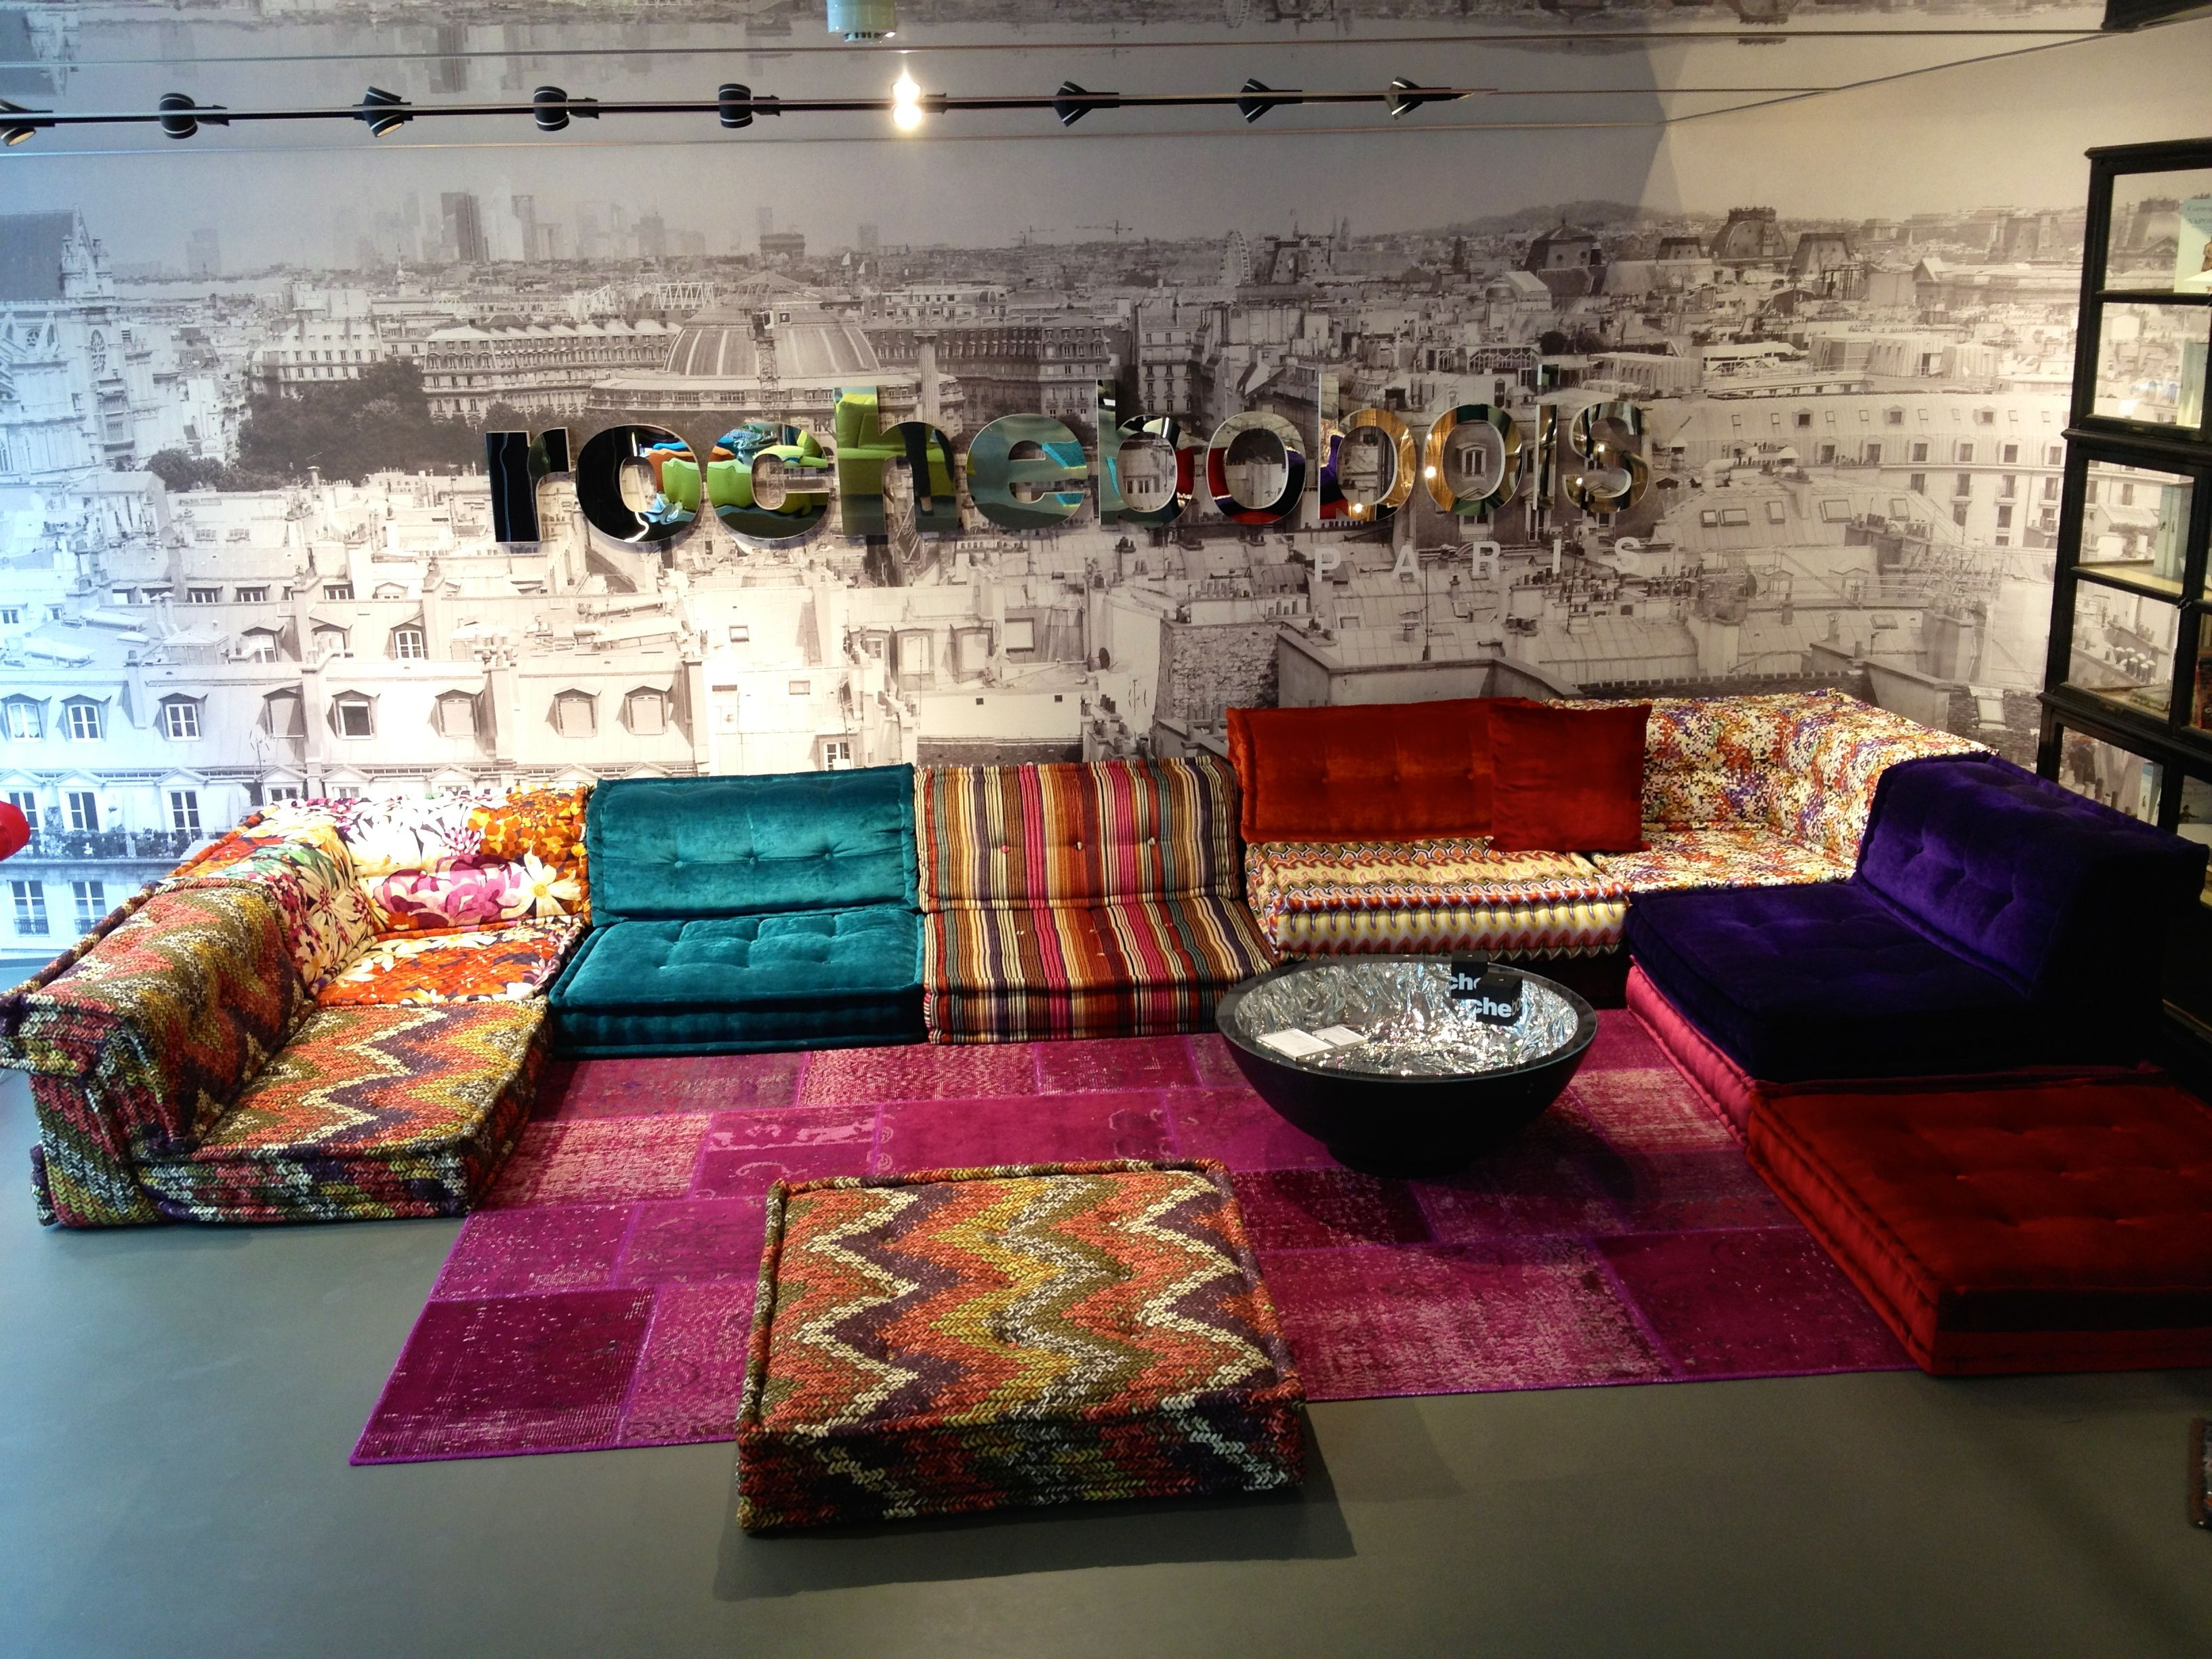 From the roche bobois showroom in m nich von der tann stra e the mah jong sofa by h hopfer - Divano mah jong roche bobois prezzo ...